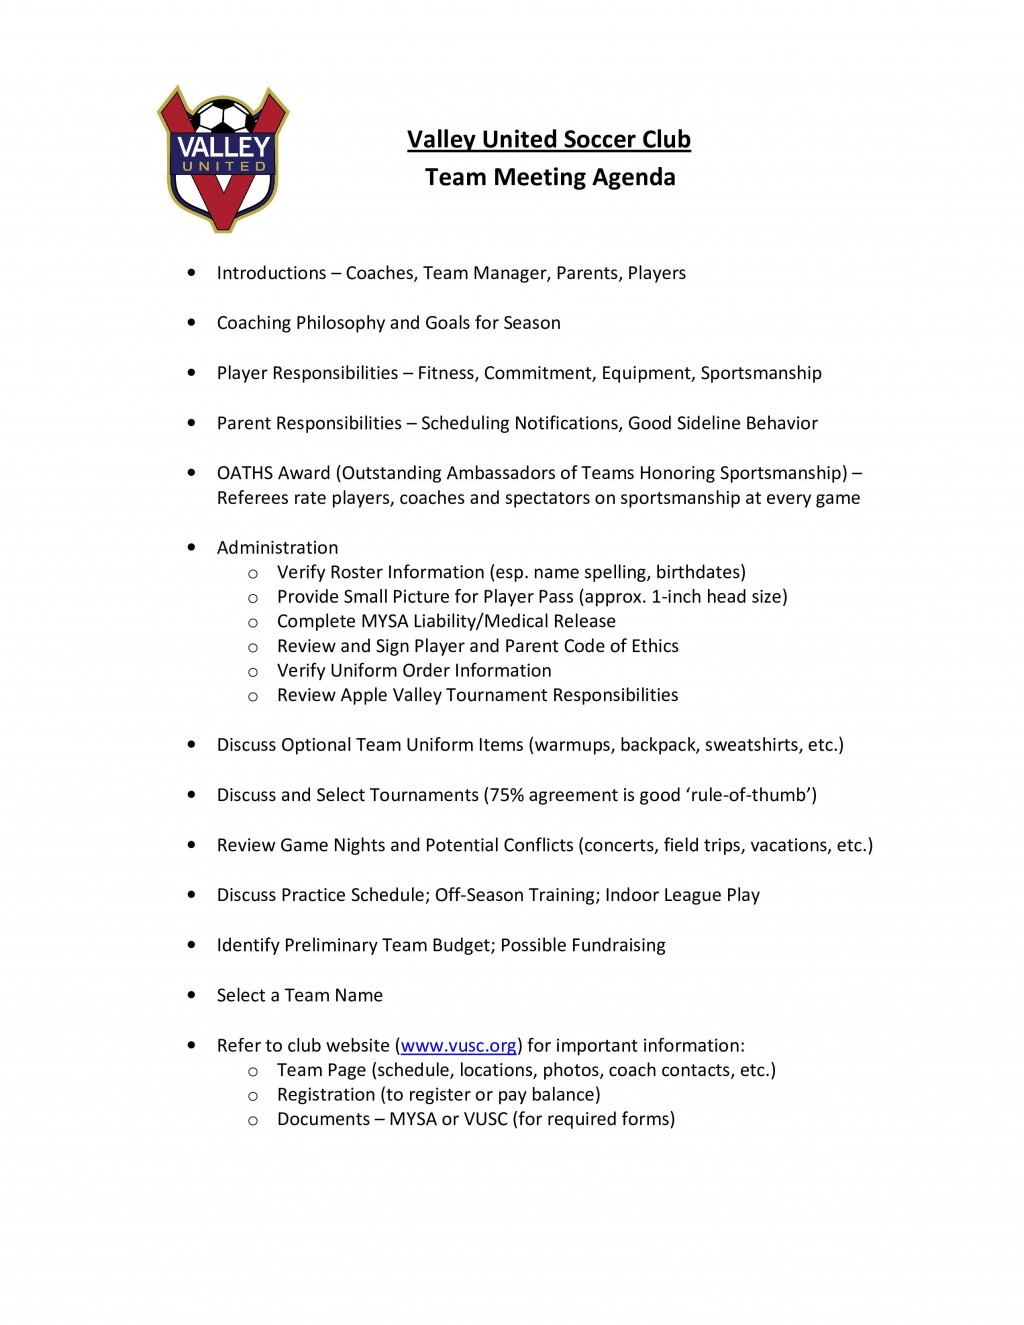 001 Wonderful Formal Meeting Agenda Template High Resolution  Board Example PdfLarge